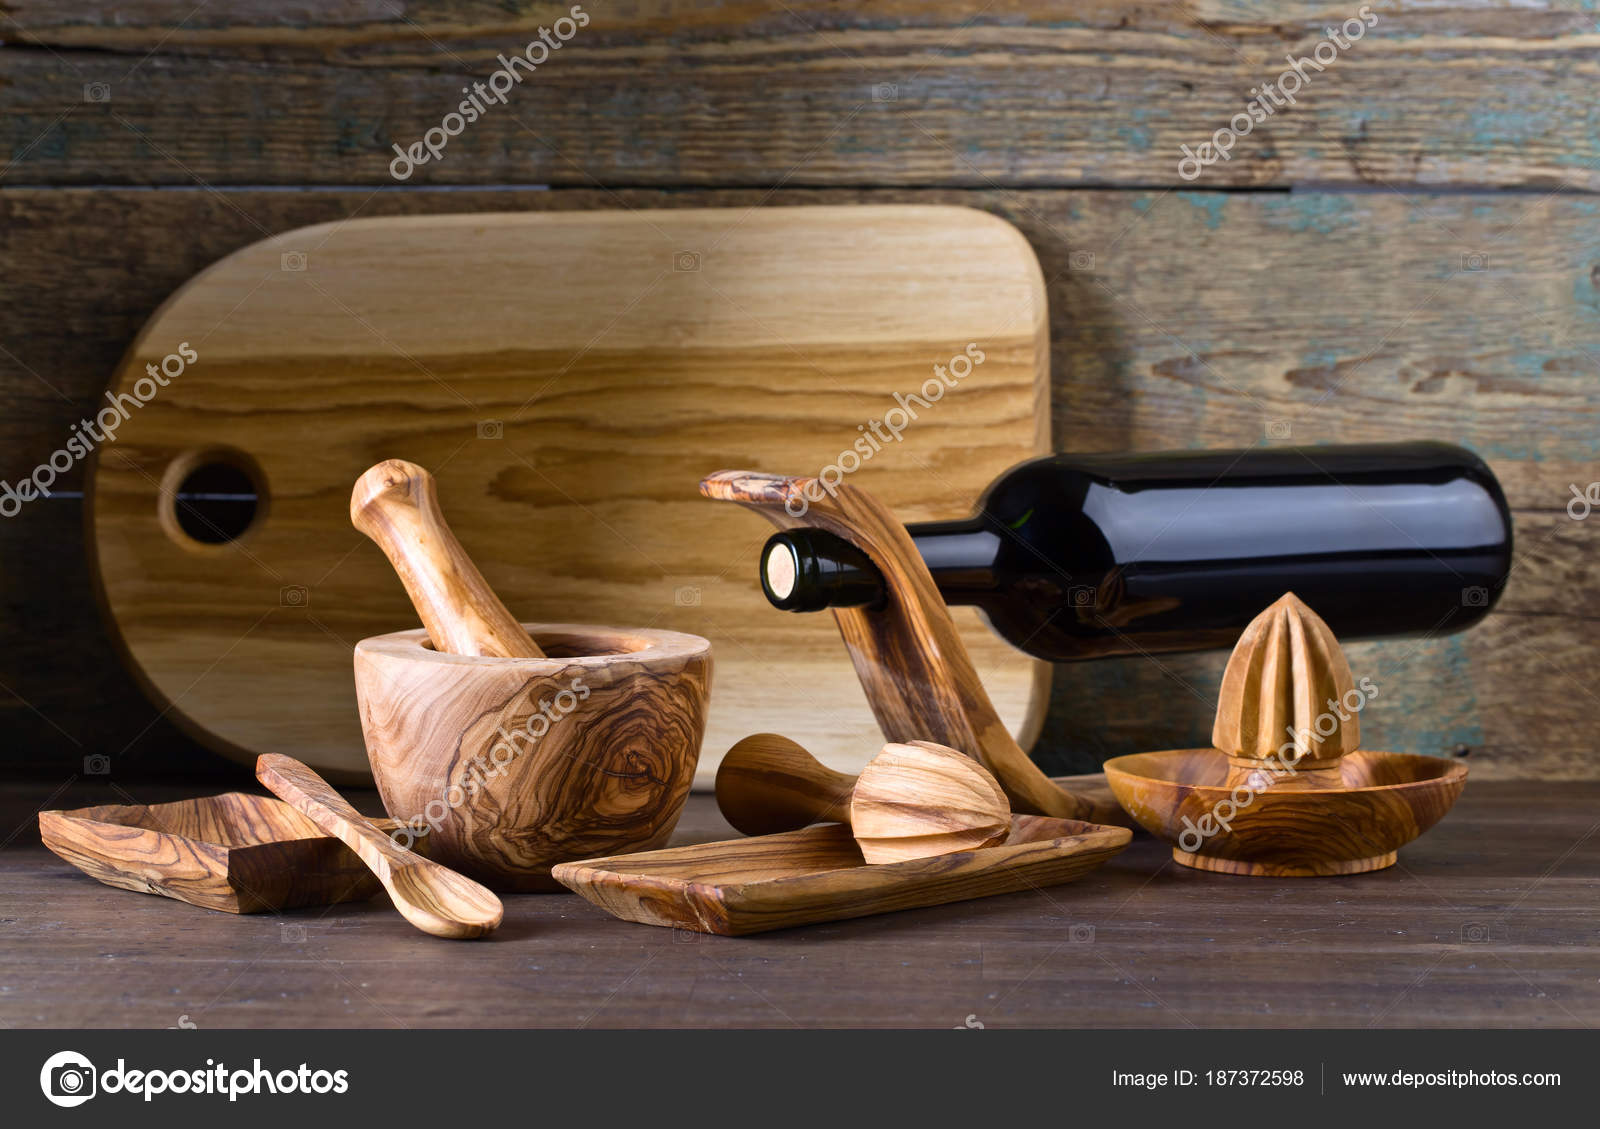 Set of wooden kitchen utensils made from olive wood photo by igorr1